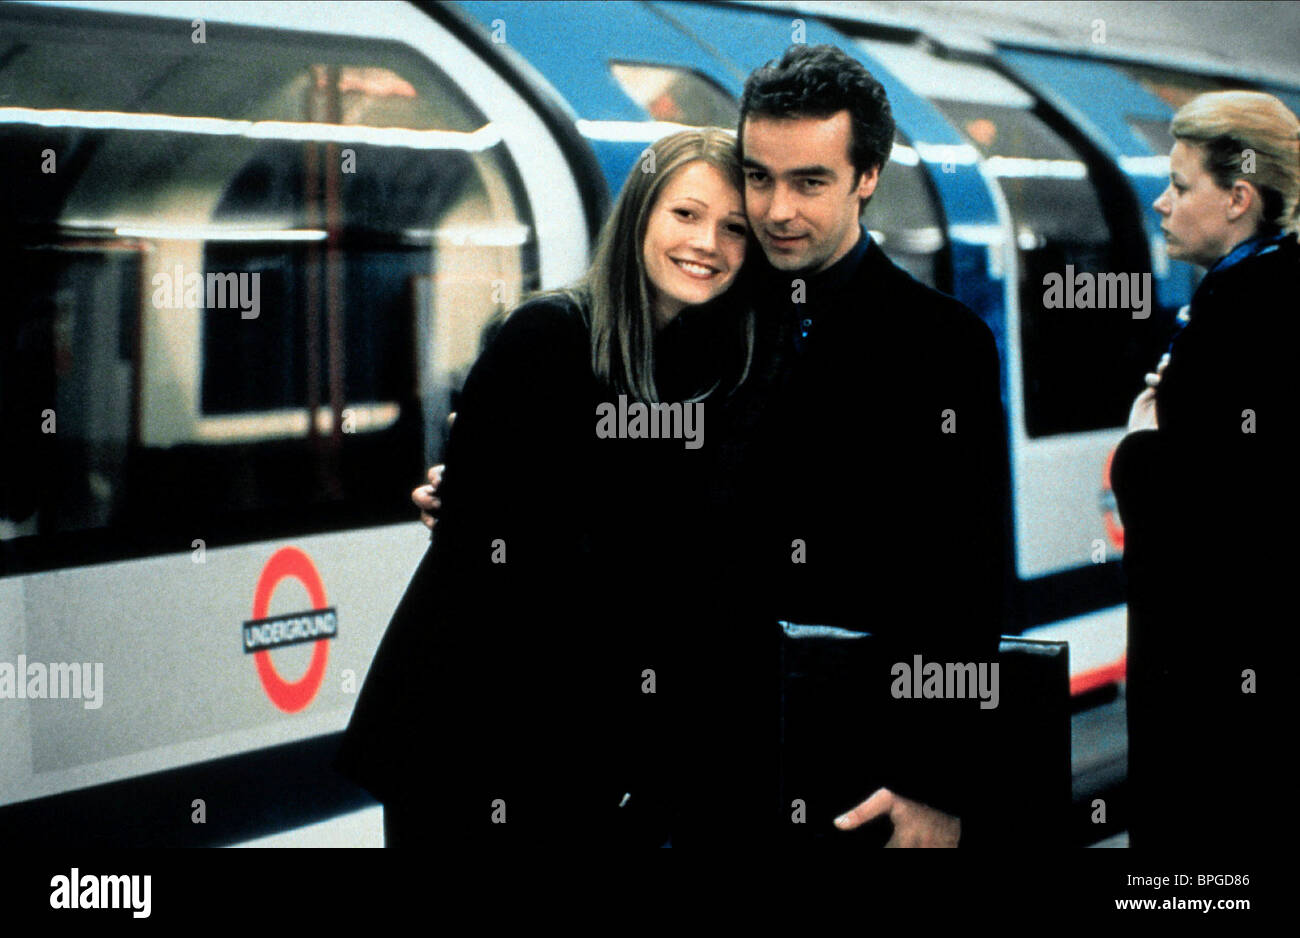 GWYNETH PALTROW u0026 JOHN HANNAH SLIDING DOORS (1998)  sc 1 st  Alamy & GWYNETH PALTROW u0026 JOHN HANNAH SLIDING DOORS (1998 Stock Photo ...